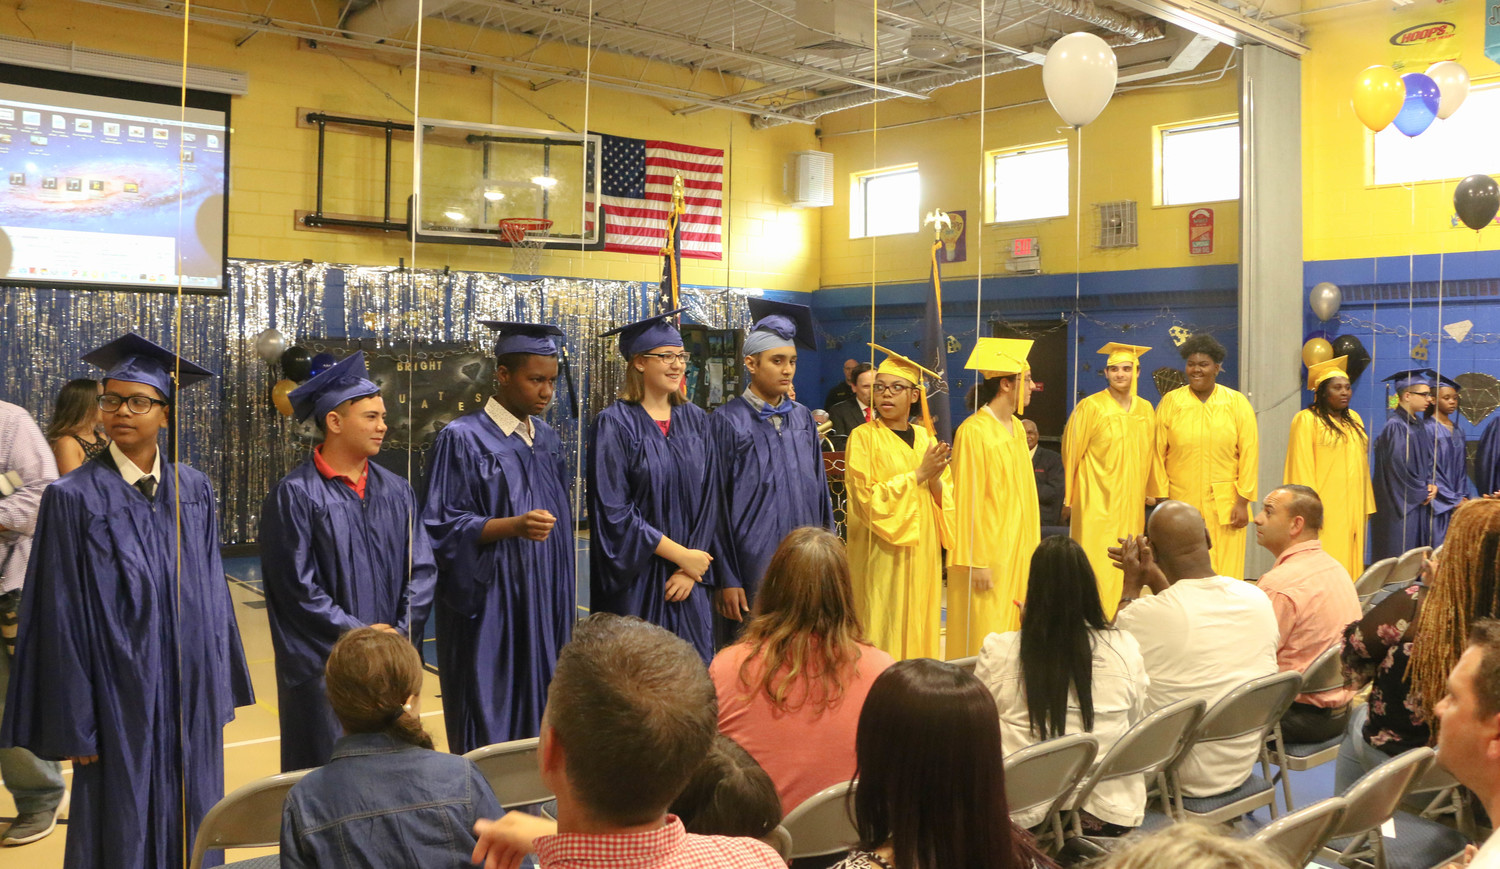 The of Woodward Children's Center Class of 2018 stood before their families, teachers, elected officials and school administrators and teachers on June 27 during their high school graduation at the school's gymnasium.